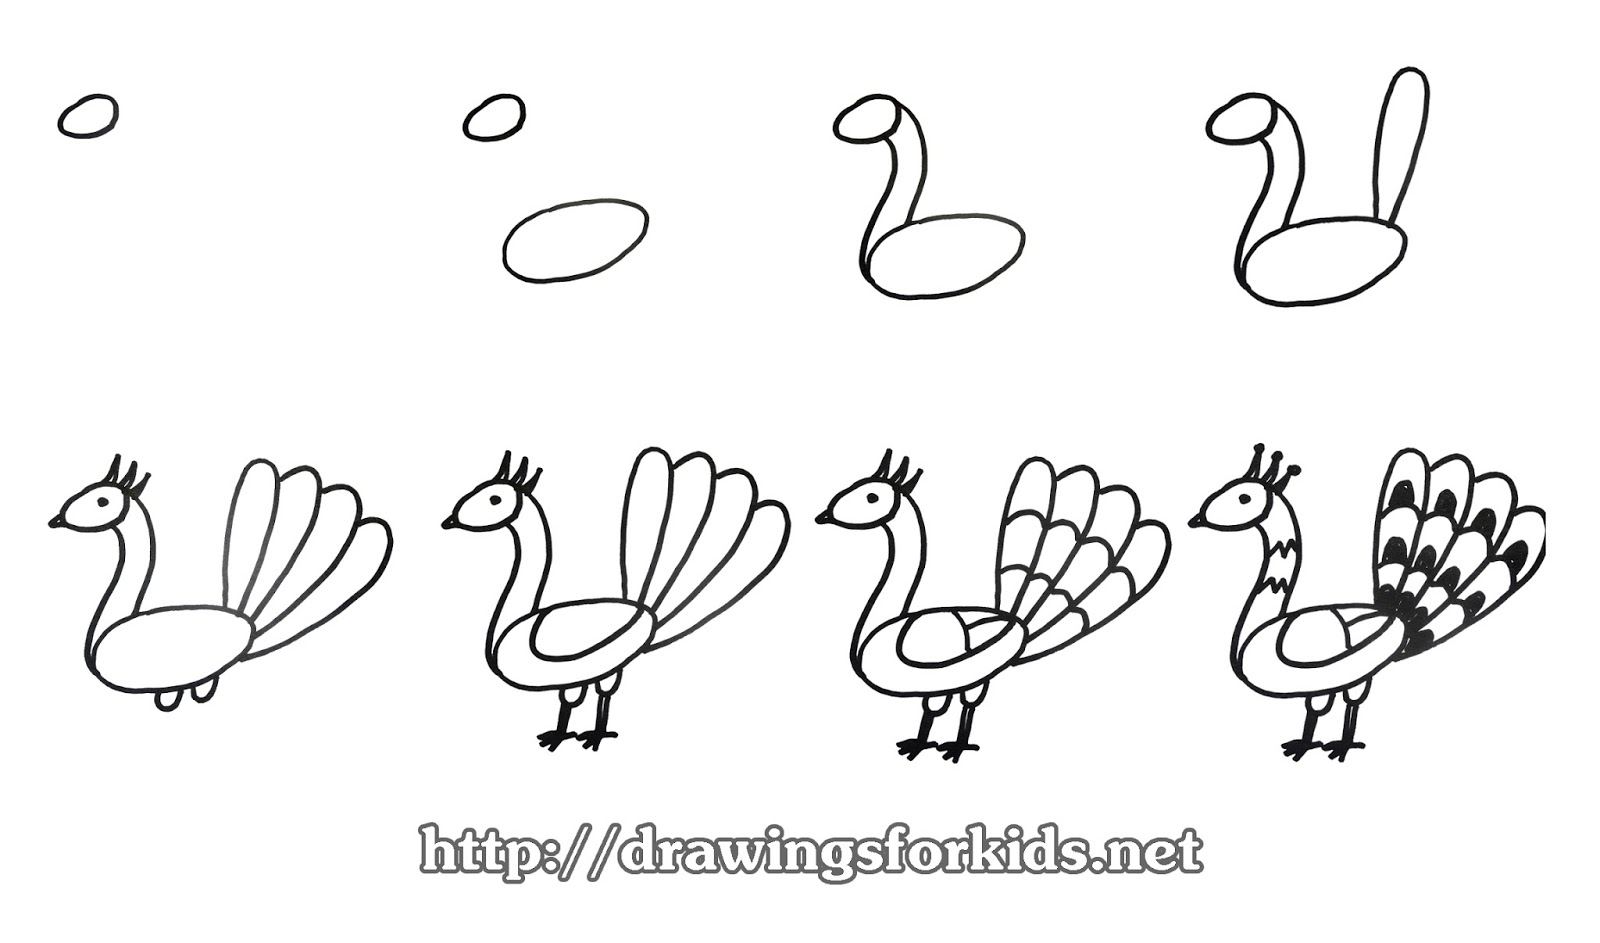 how to draw a peacock step by step for kids תוצאת תמונה עבור how to draw a peacock step by step a how draw peacock by for to step step kids